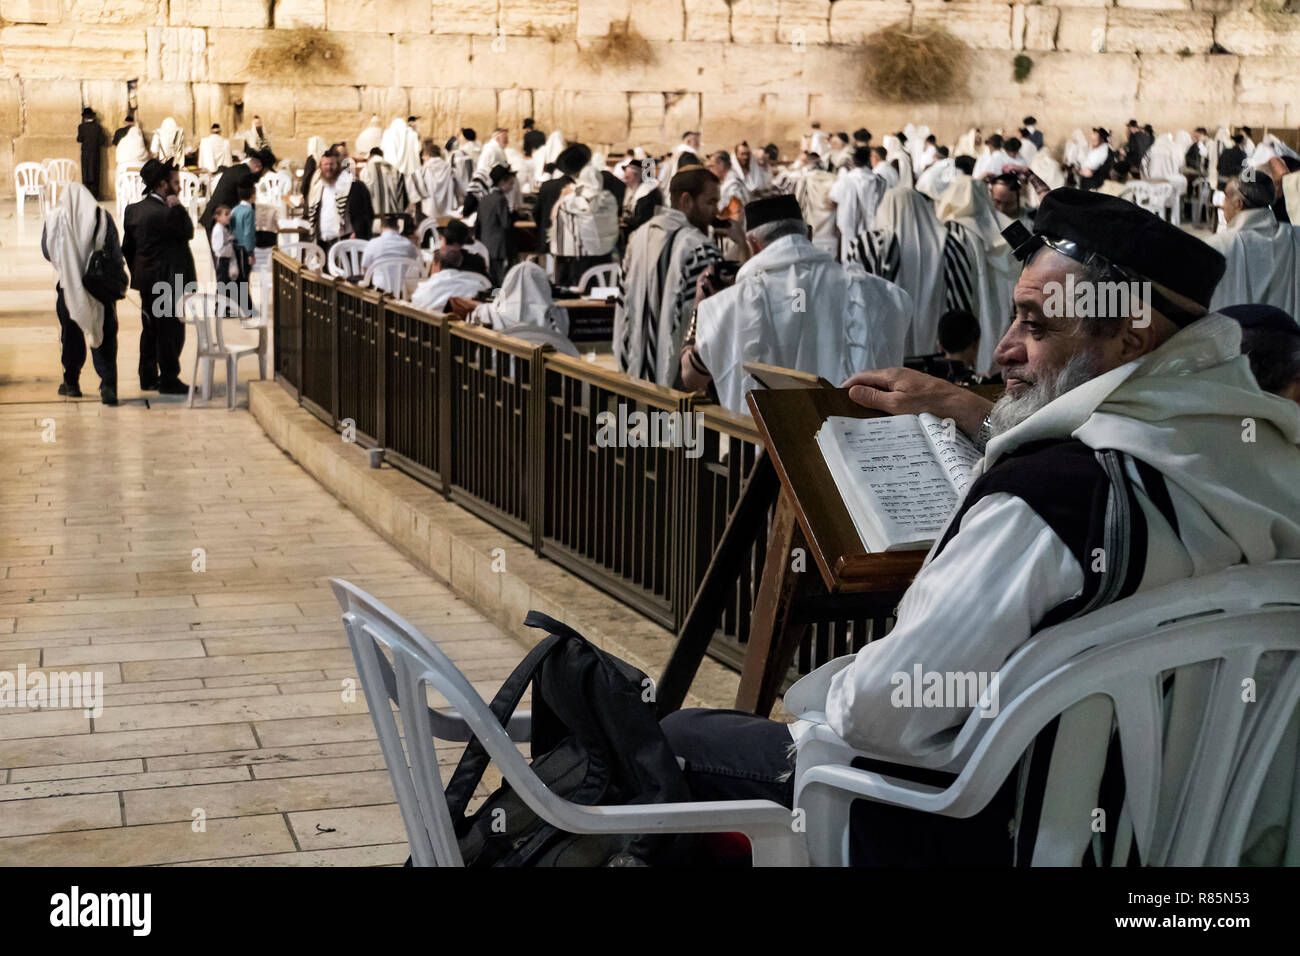 Religious orthodox jew praying at the Western wall and reads the Torah in Jerusalem old city. JERUSALEM, ISRAEL. 24 October 2018. - Stock Image